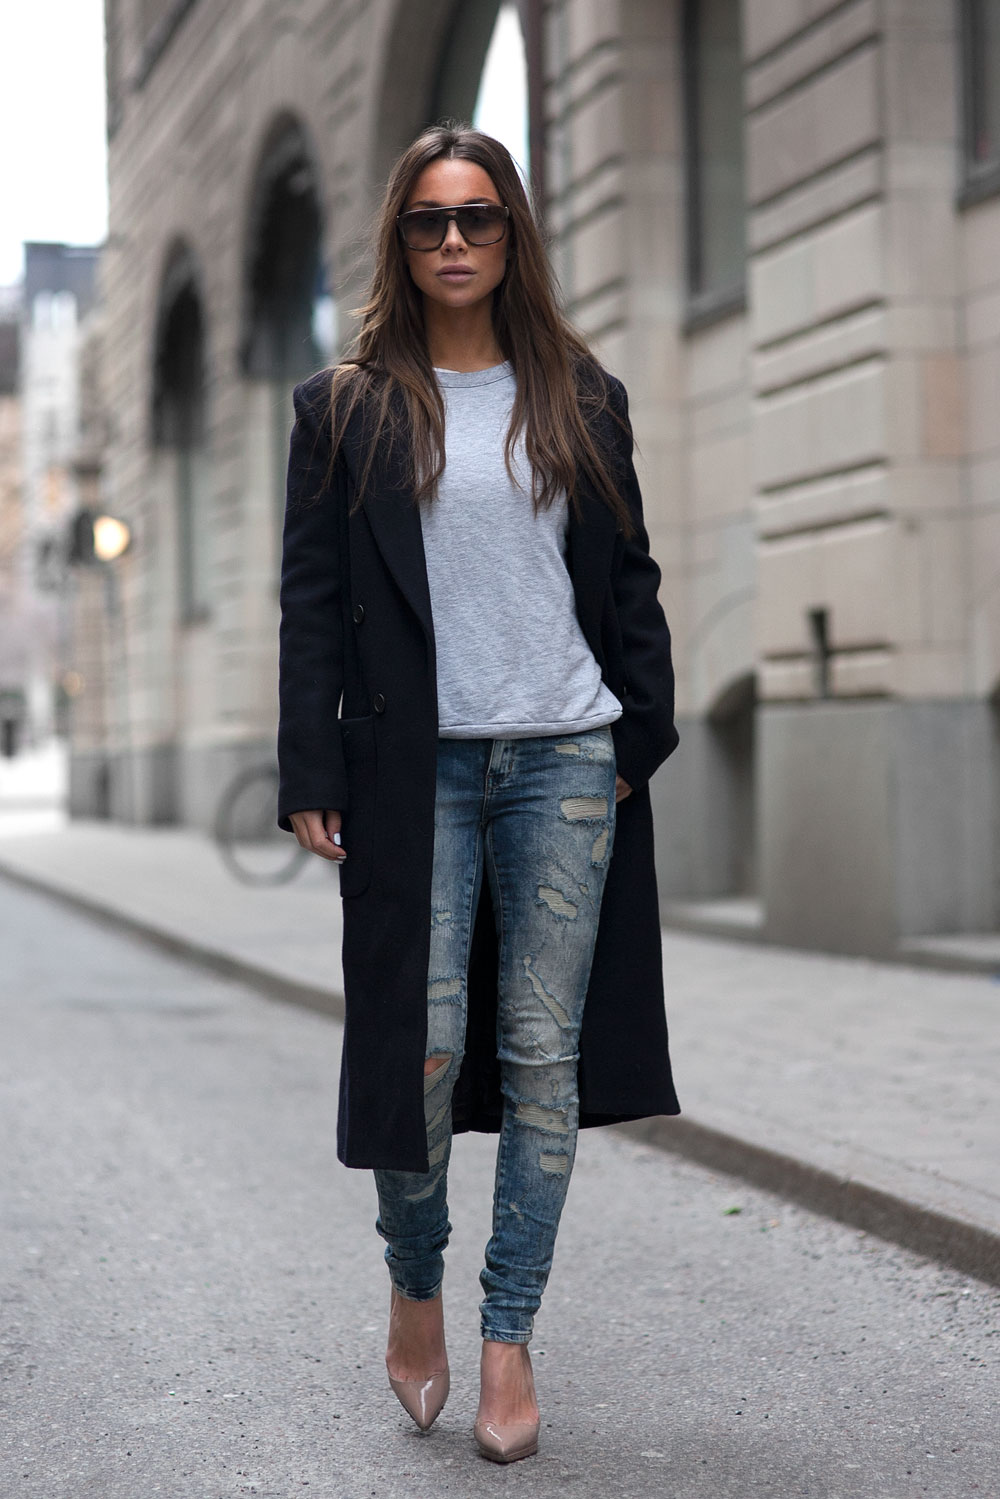 Johanna Olsson is wearing ripped blue jeans from Noisy May, nude shoes from Christian Loboutin and the black coat is from LXLS